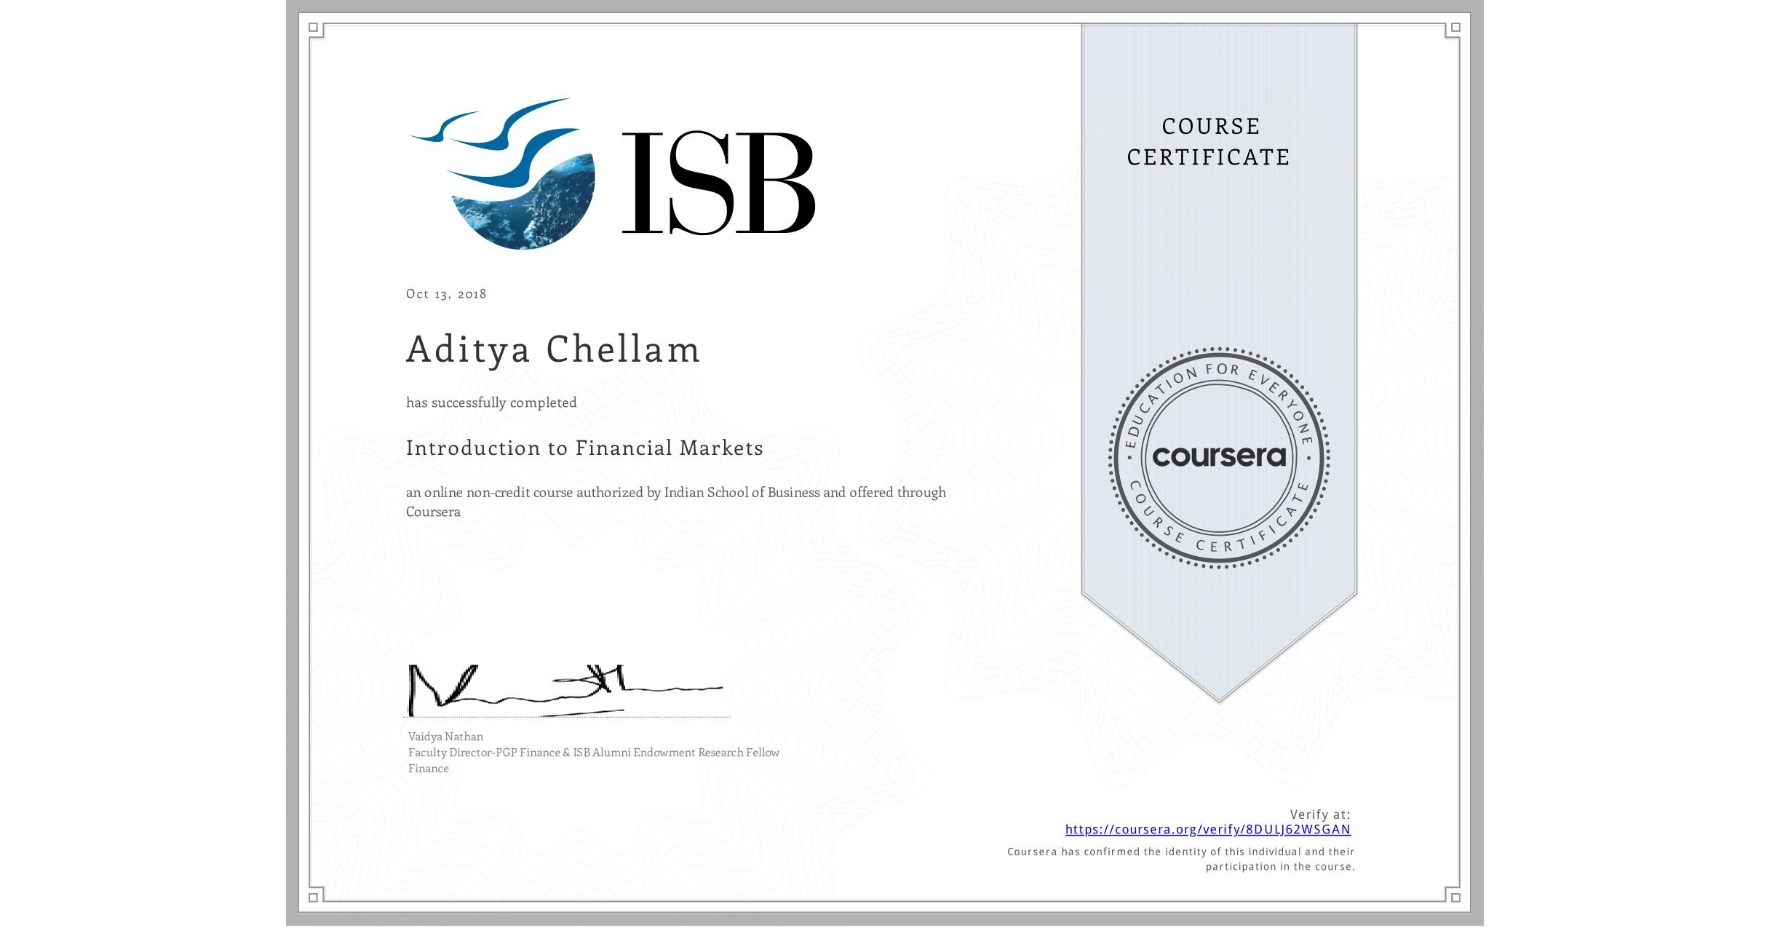 View certificate for Aditya Chellam, Introduction to Financial Markets, an online non-credit course authorized by Indian School of Business and offered through Coursera